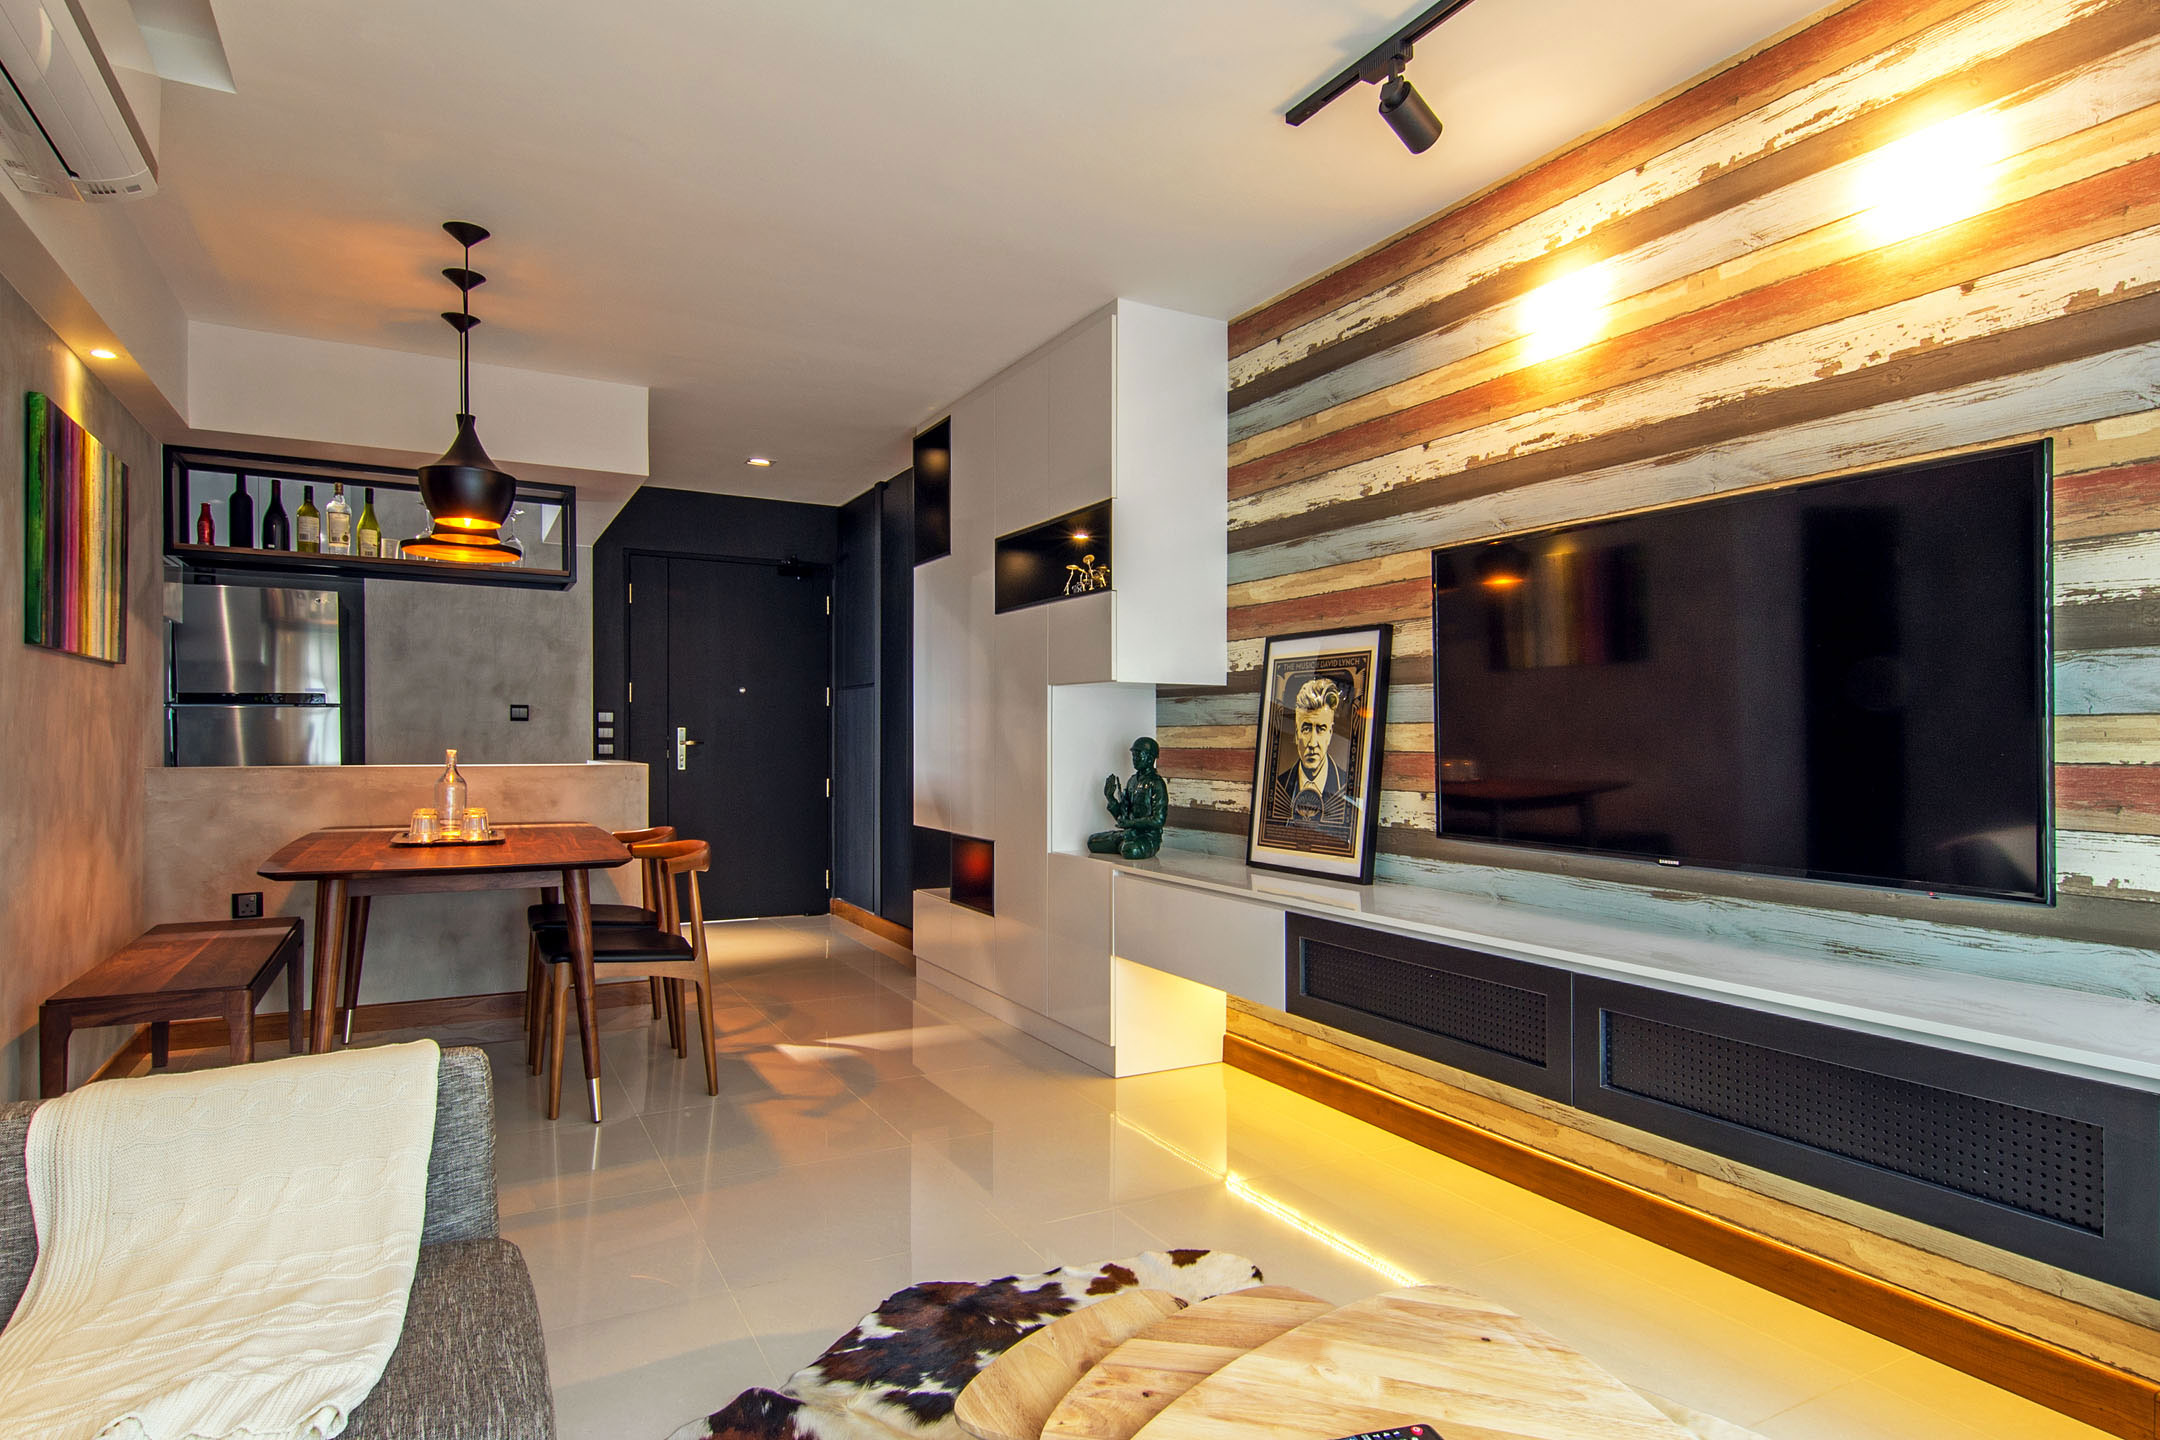 ... Stylish apartment for young couple in Singapore by Vievva Designers-07 ... & Stylish apartment for young couple in Singapore by Vievva Designers ...